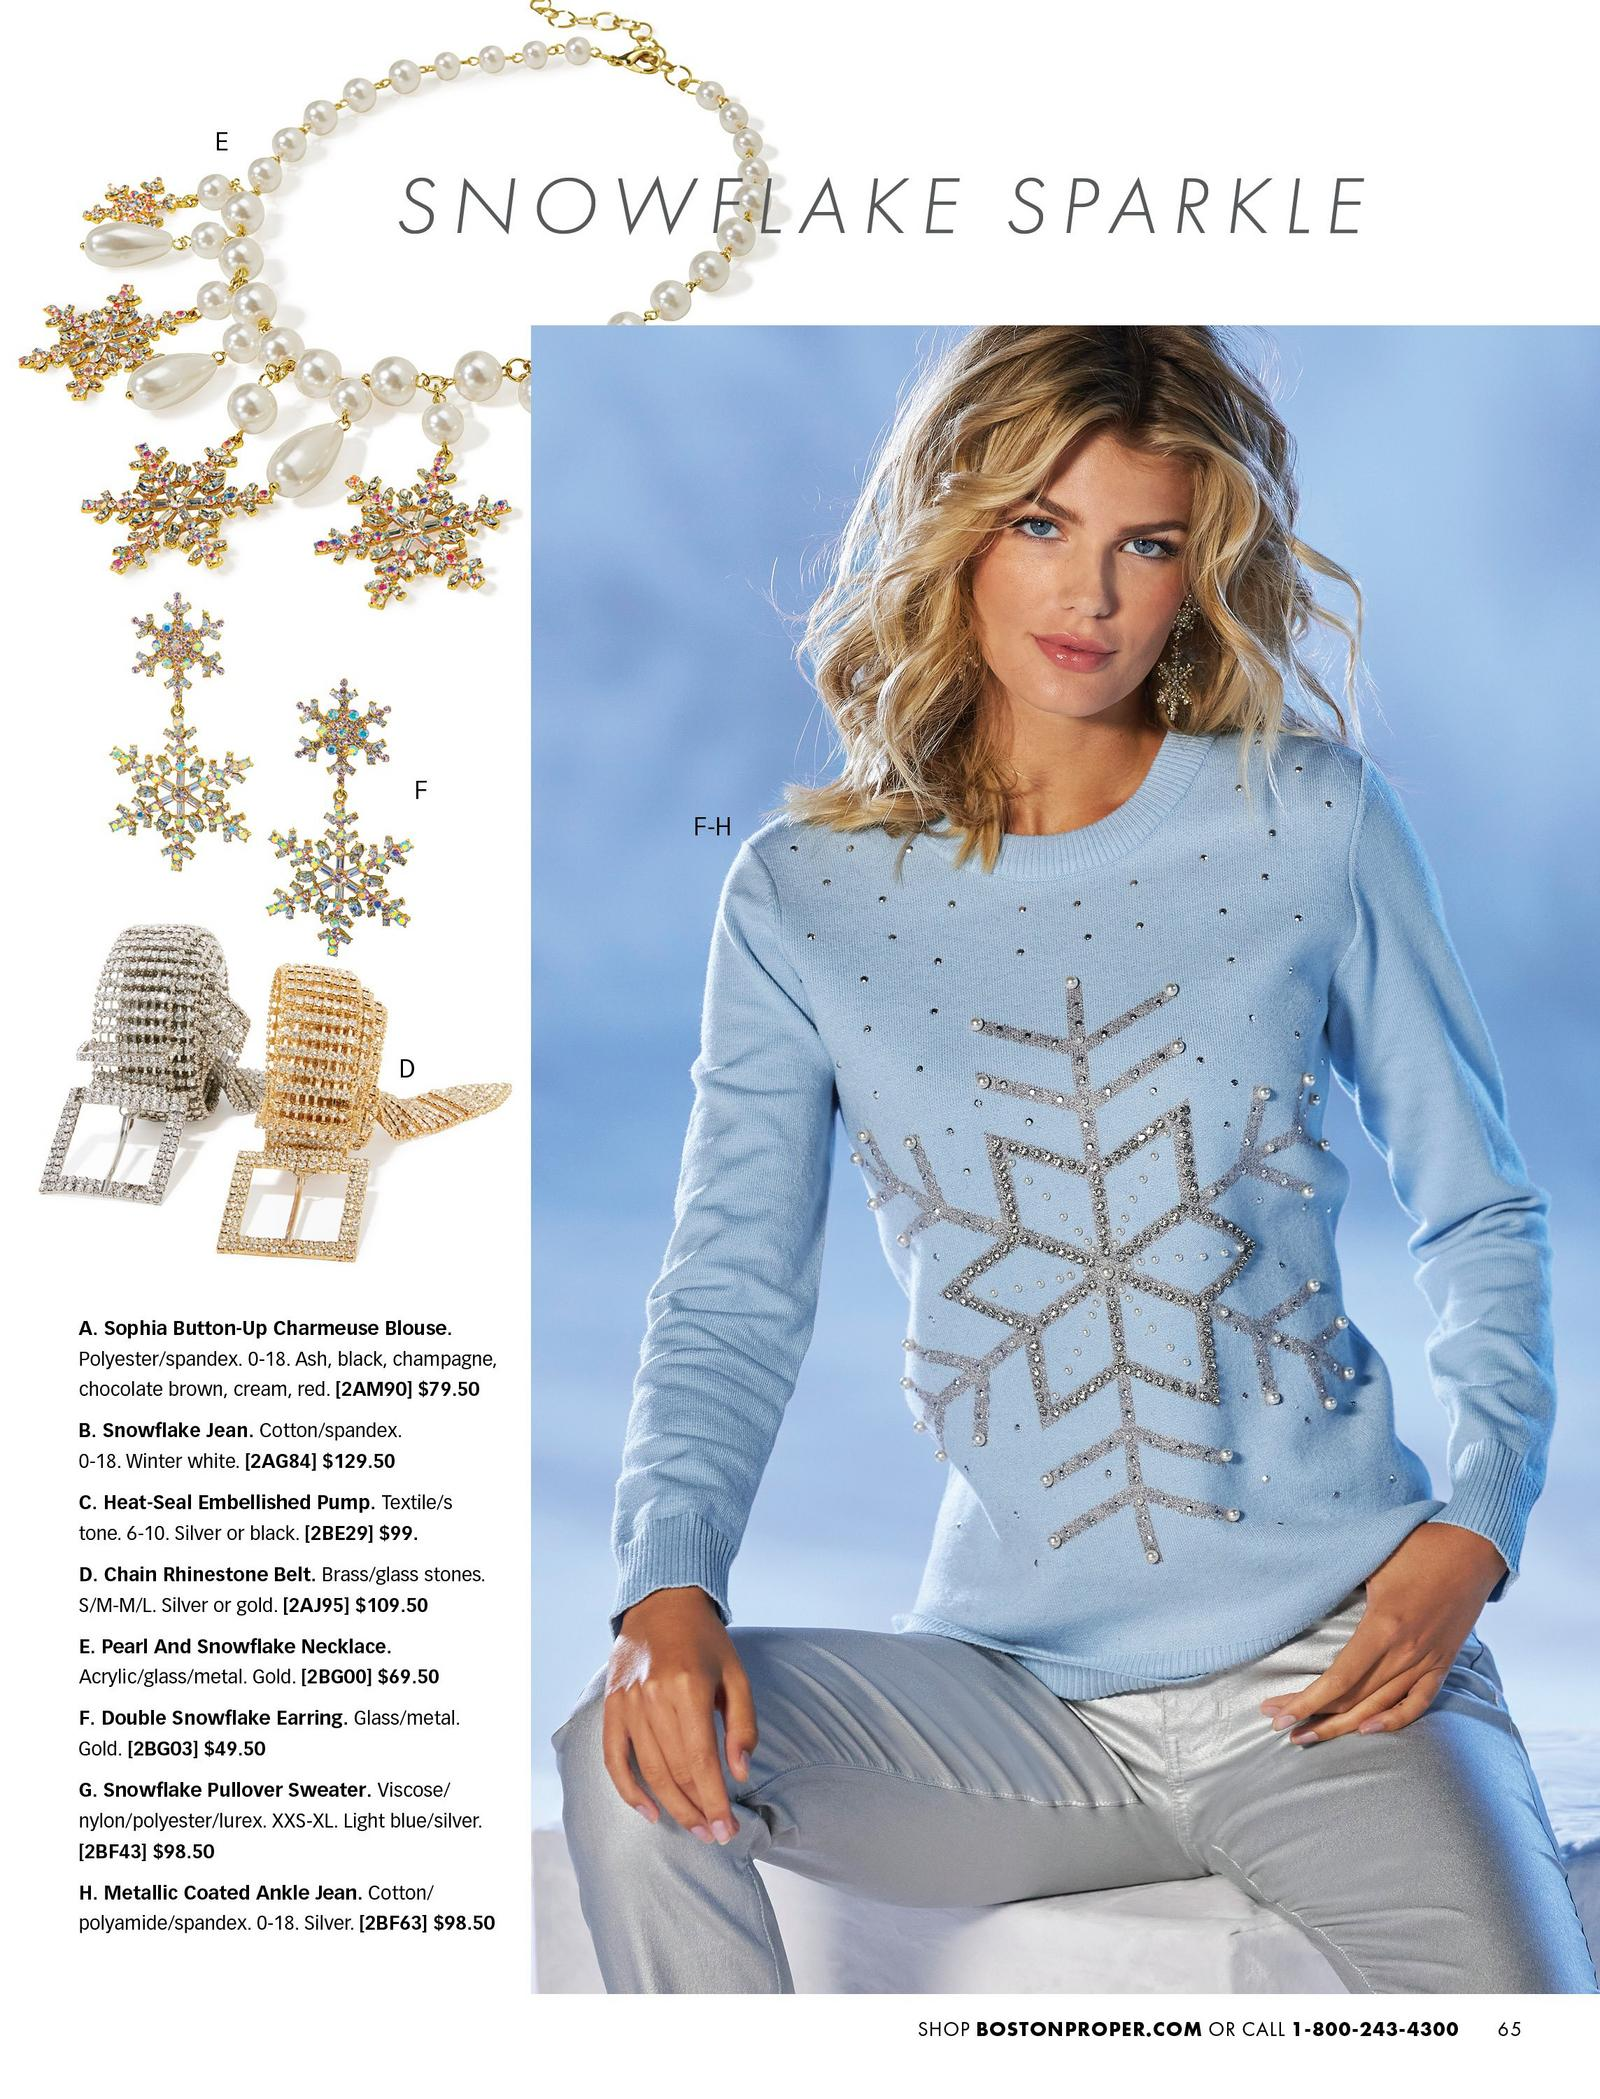 model wearing a light blue snowflake embellished pullover sweater, silver coated jeans, and snowflake earrings. also shown: silver and gold chain belts, snowflake earrings, and pearl and snowflake necklace.